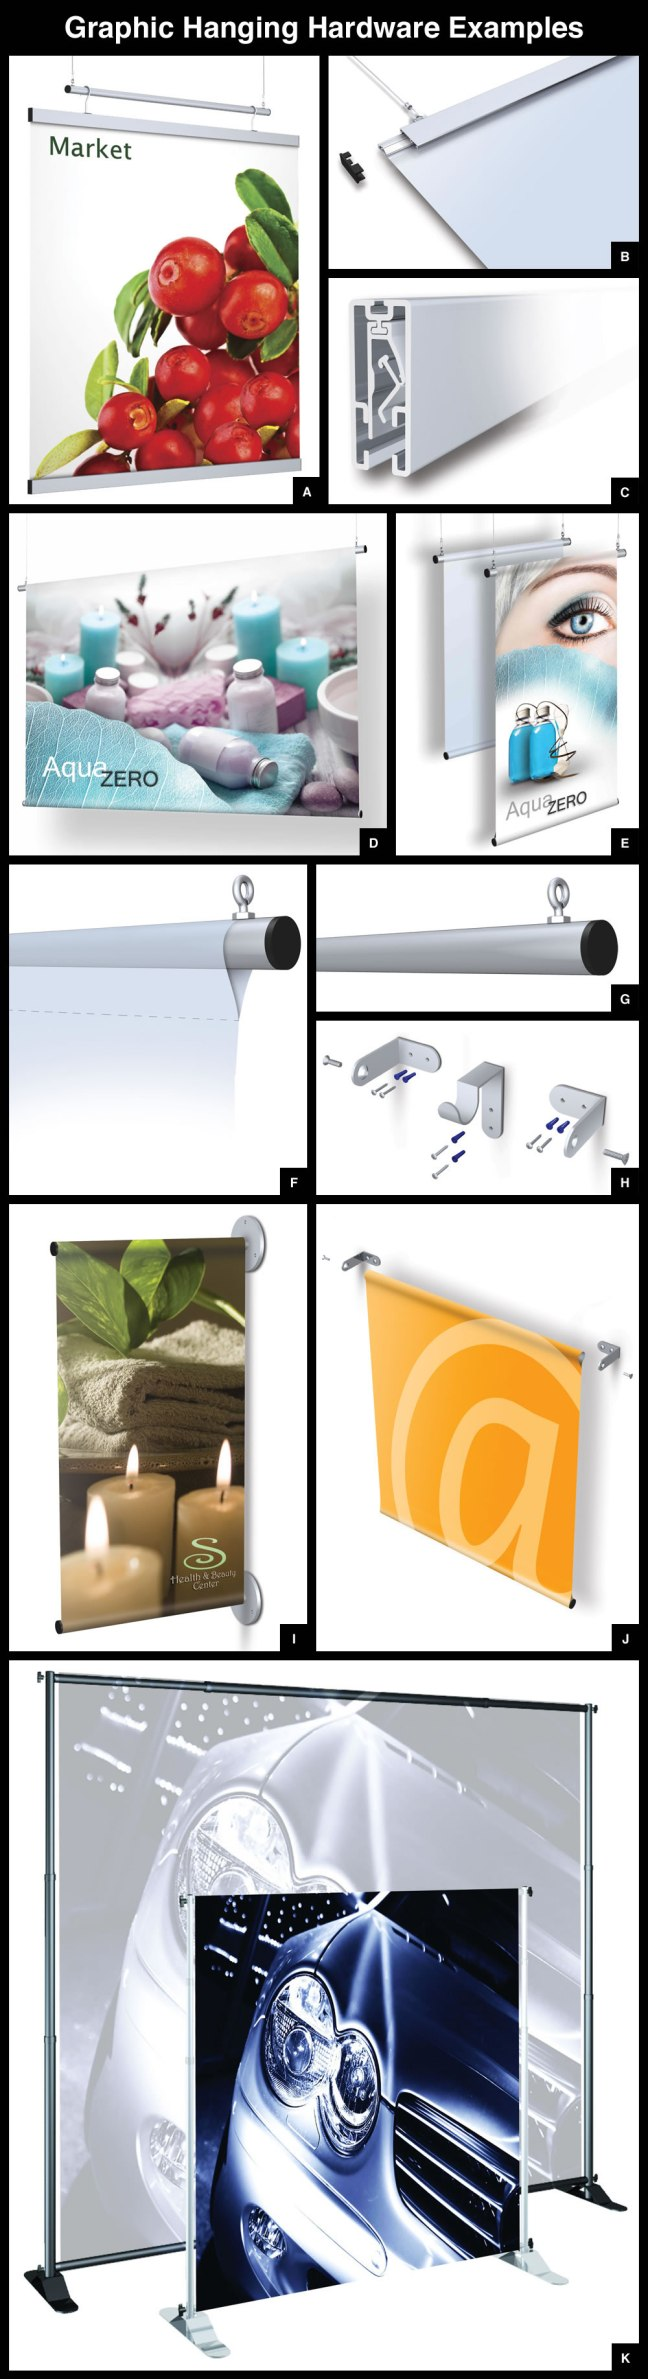 A. Quick change graphic hanging hardware. B. and C. Easy Snap graphic hanging clips. D. thru J. Aluminum dowel rod graphic hanging hardware. K. Portable, adjustable banner hardware with pole-pocket style graphics.